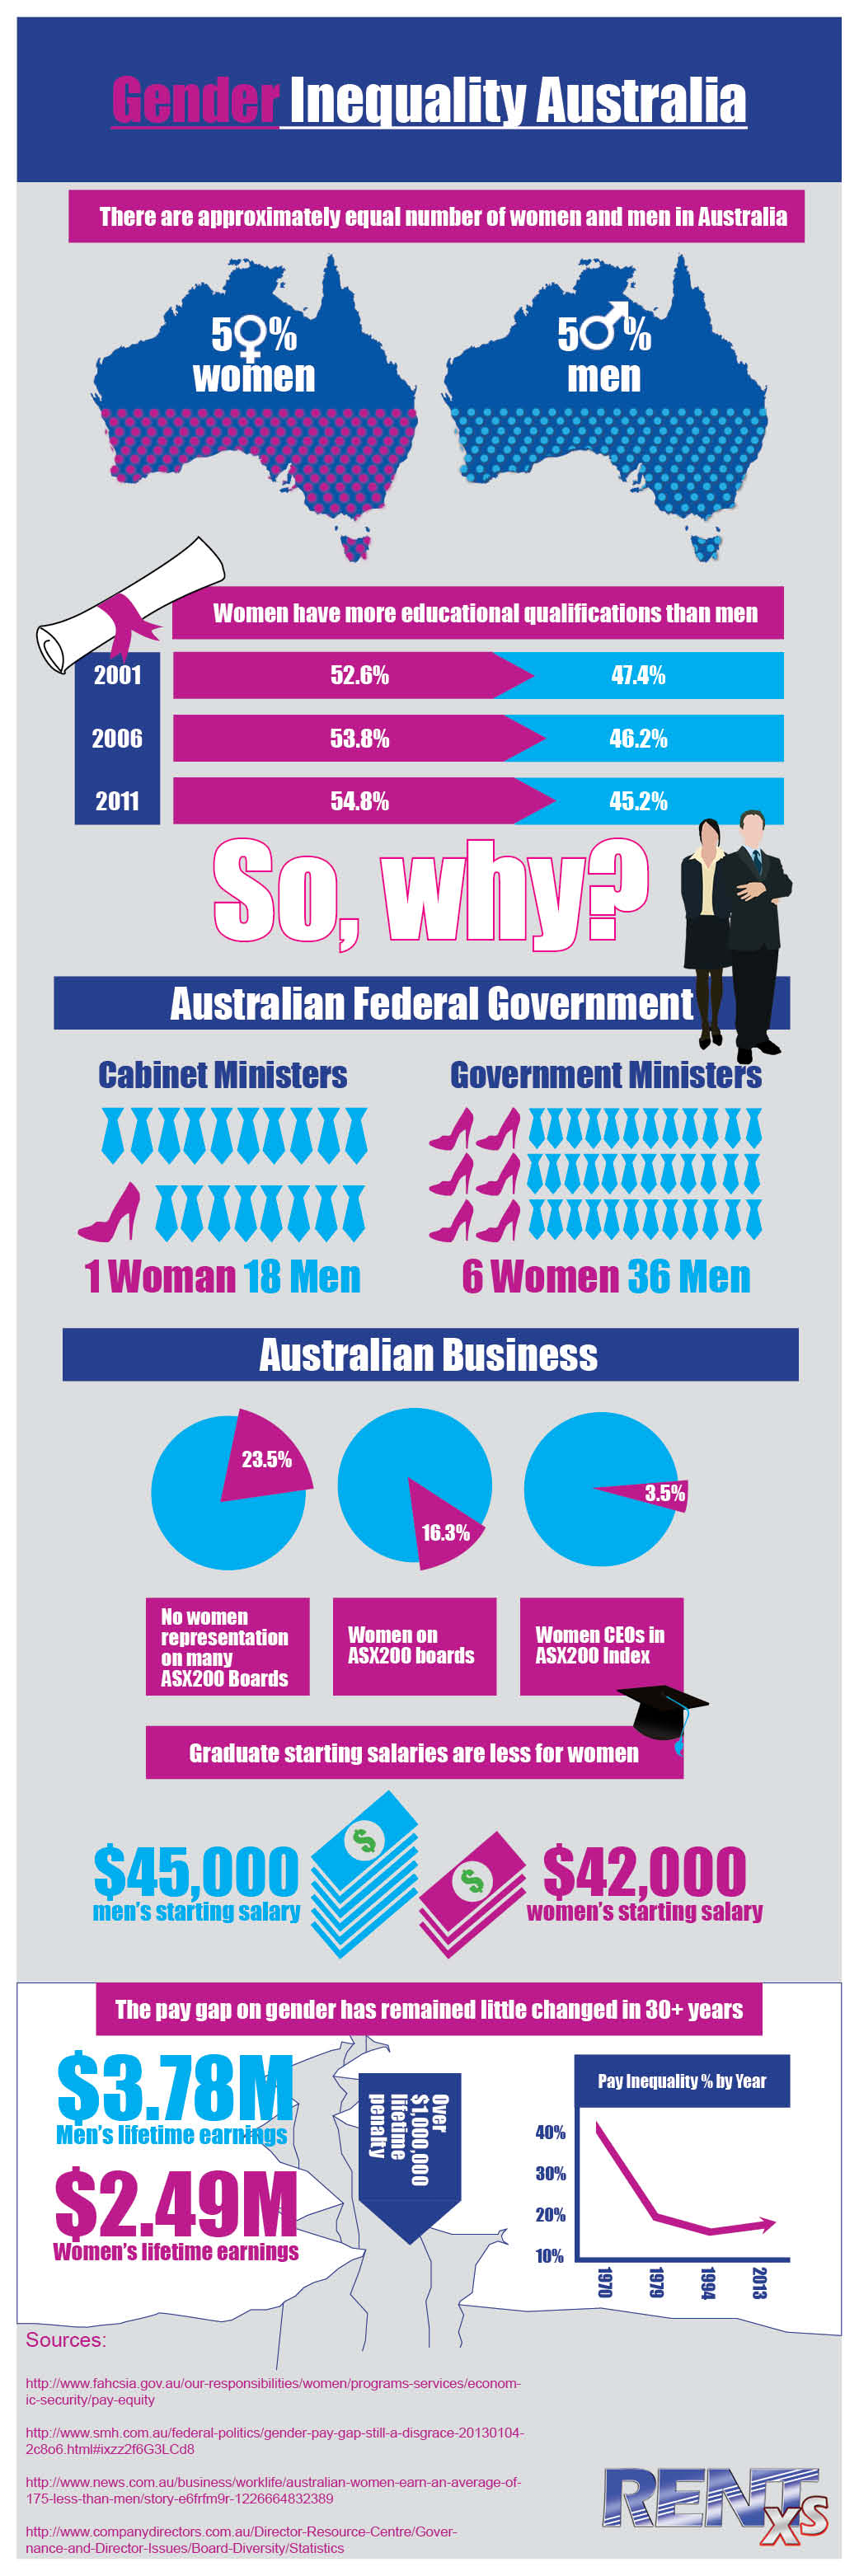 Glass Ceiling In Australia 2013